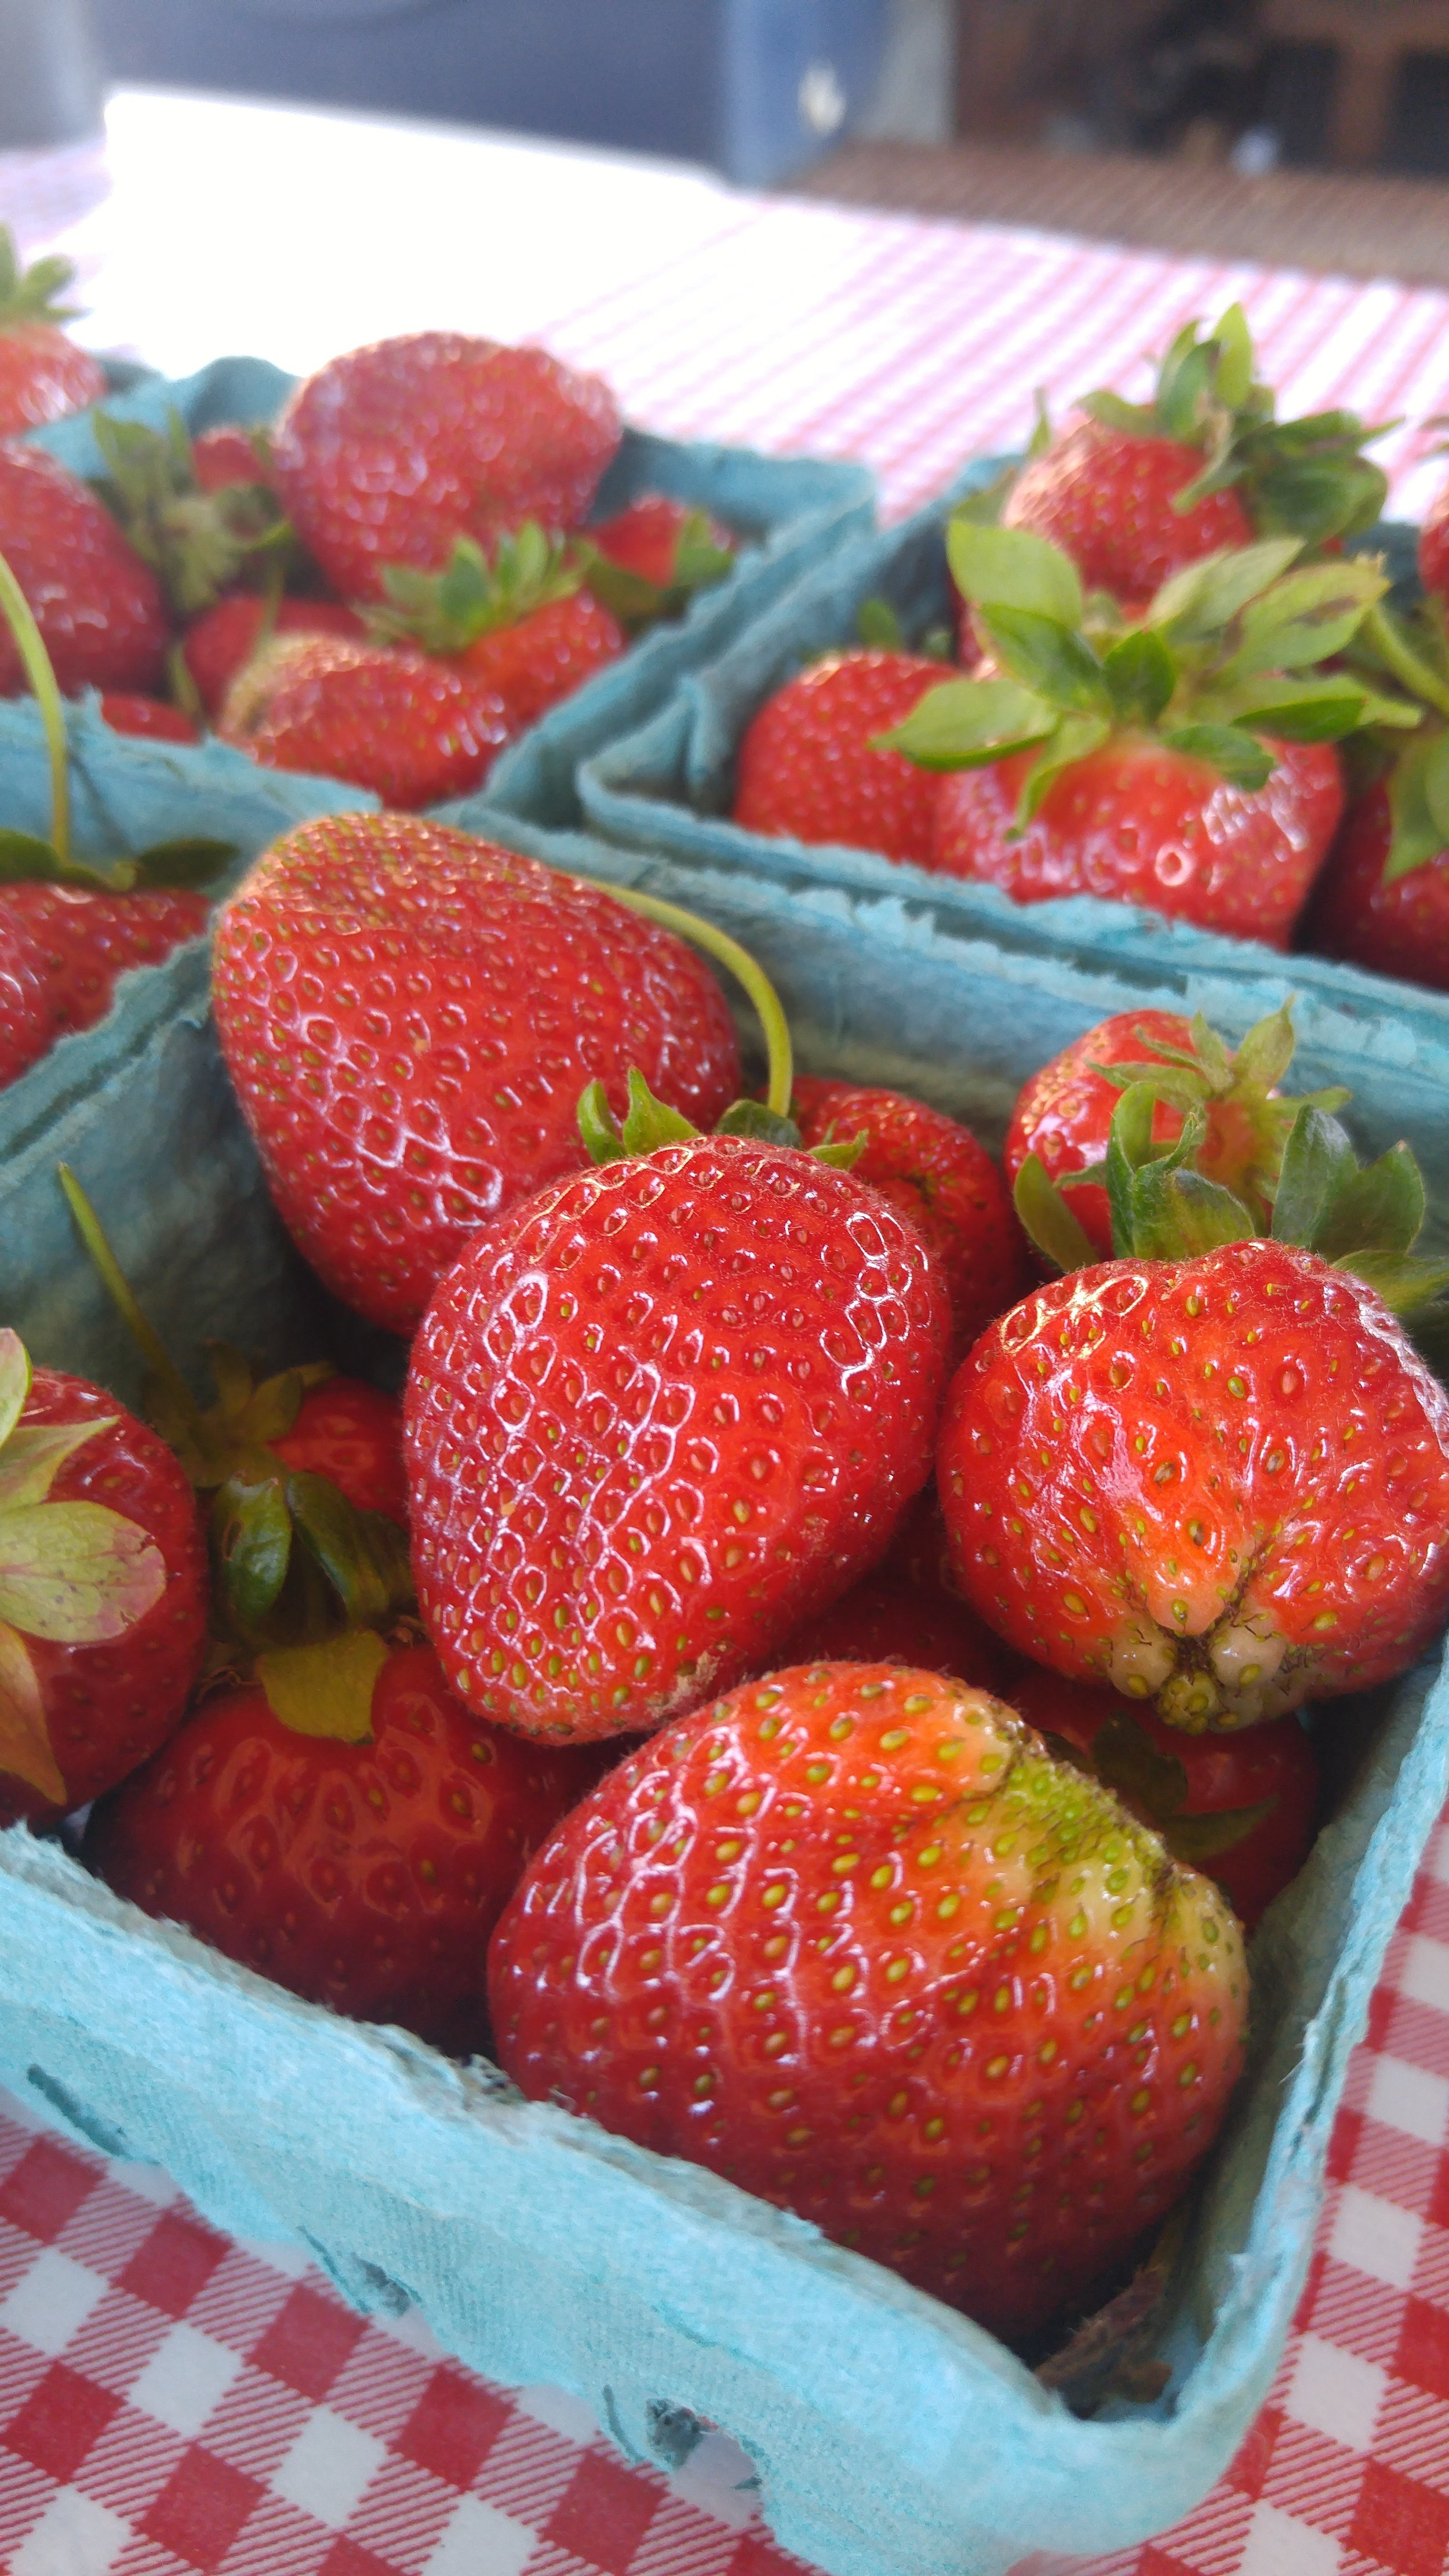 Summer's first strawberries. No recipe required.